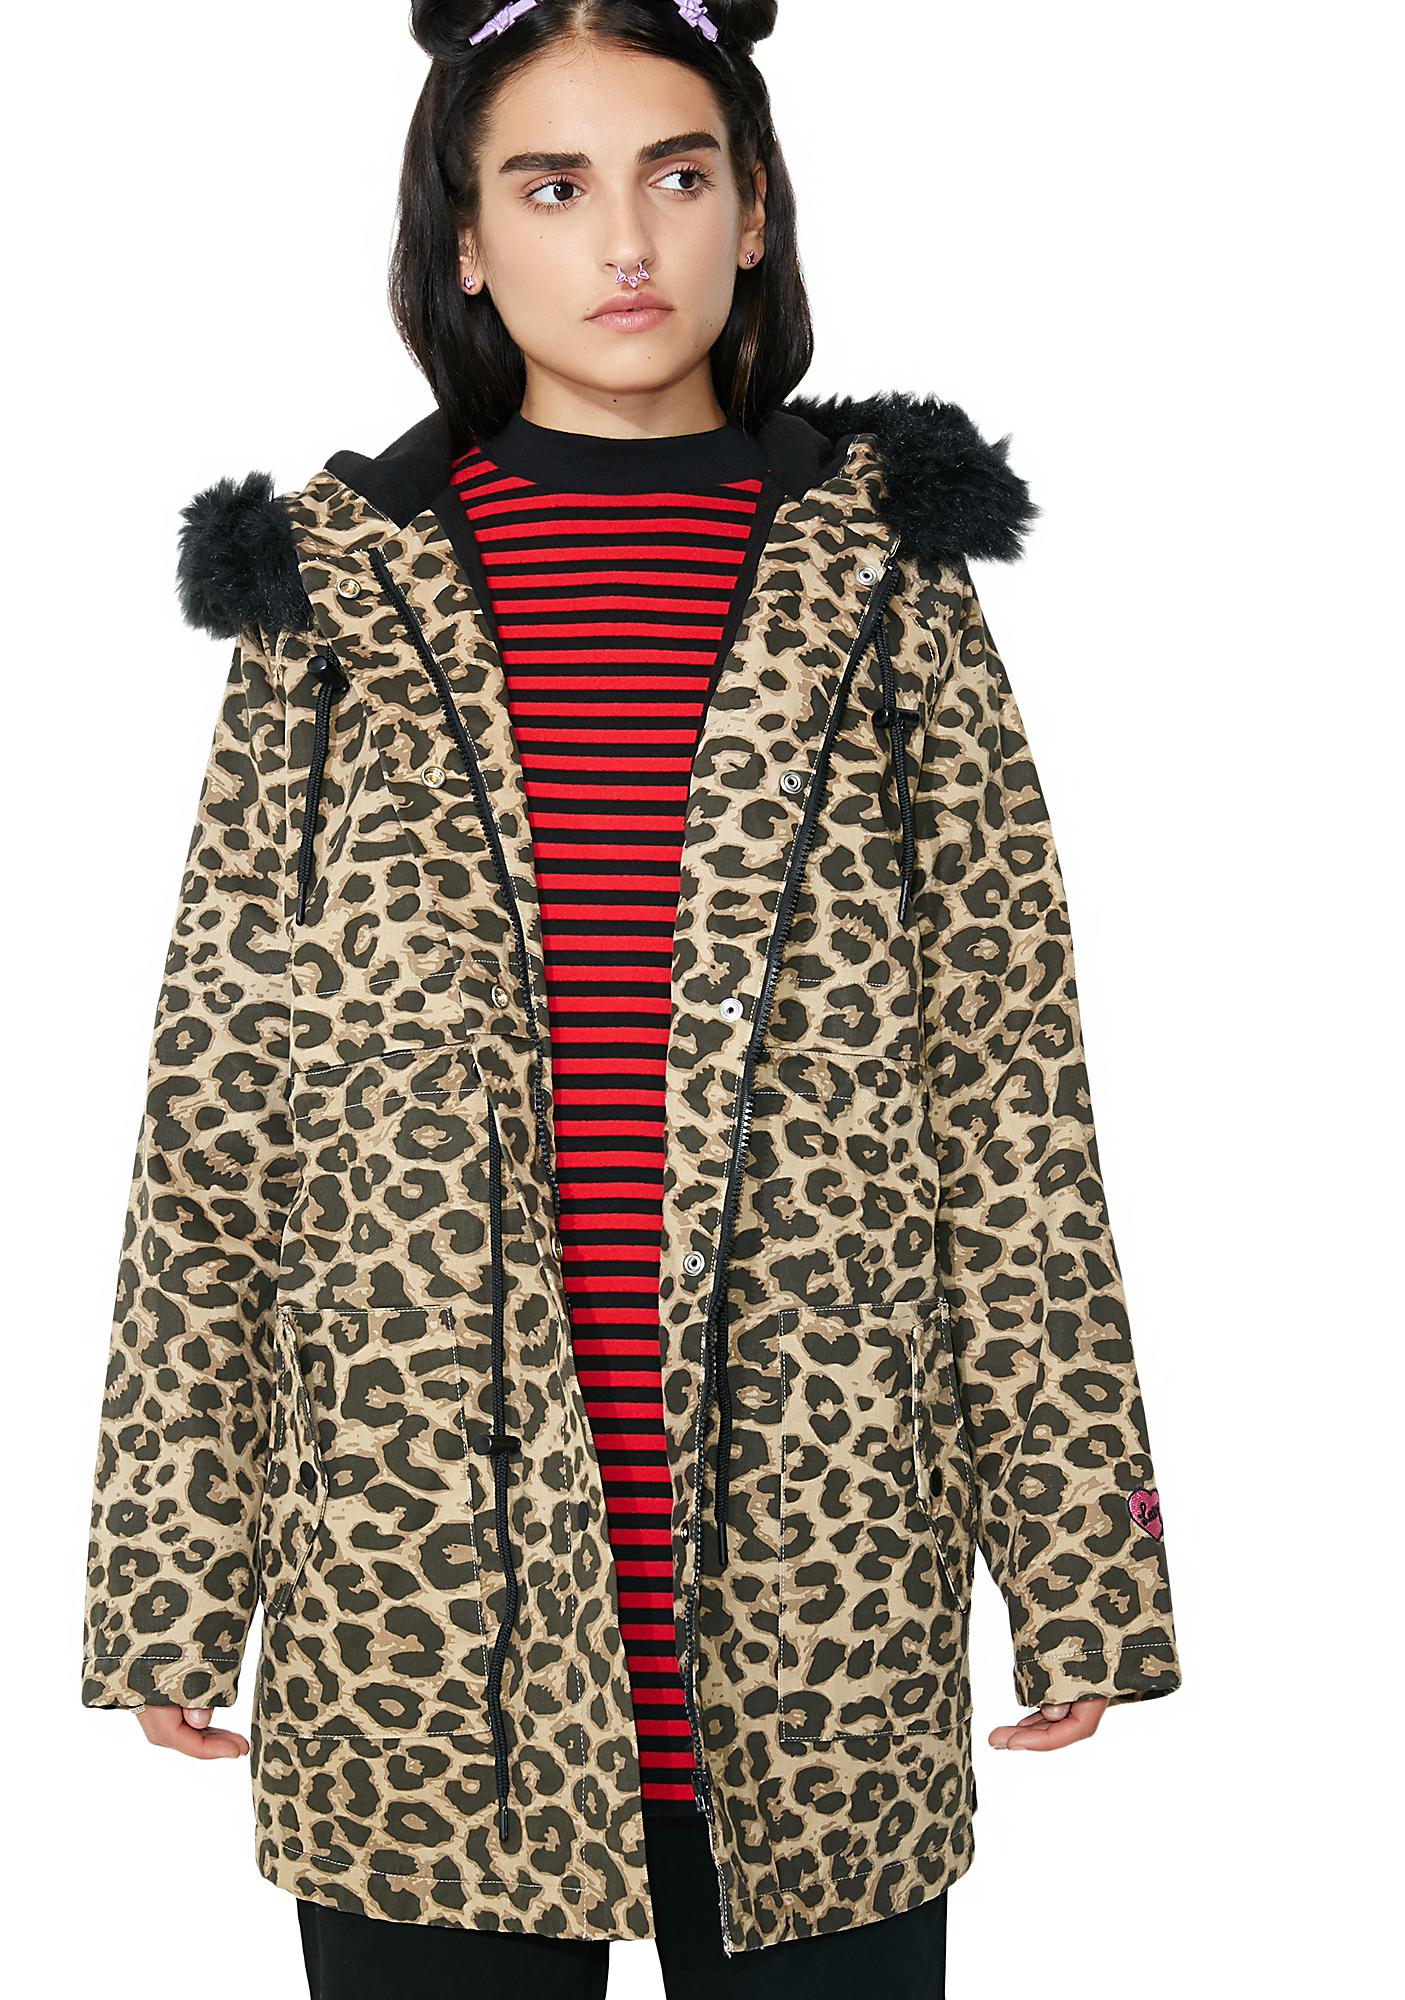 Lazy Oaf Purrfect Printed Parka